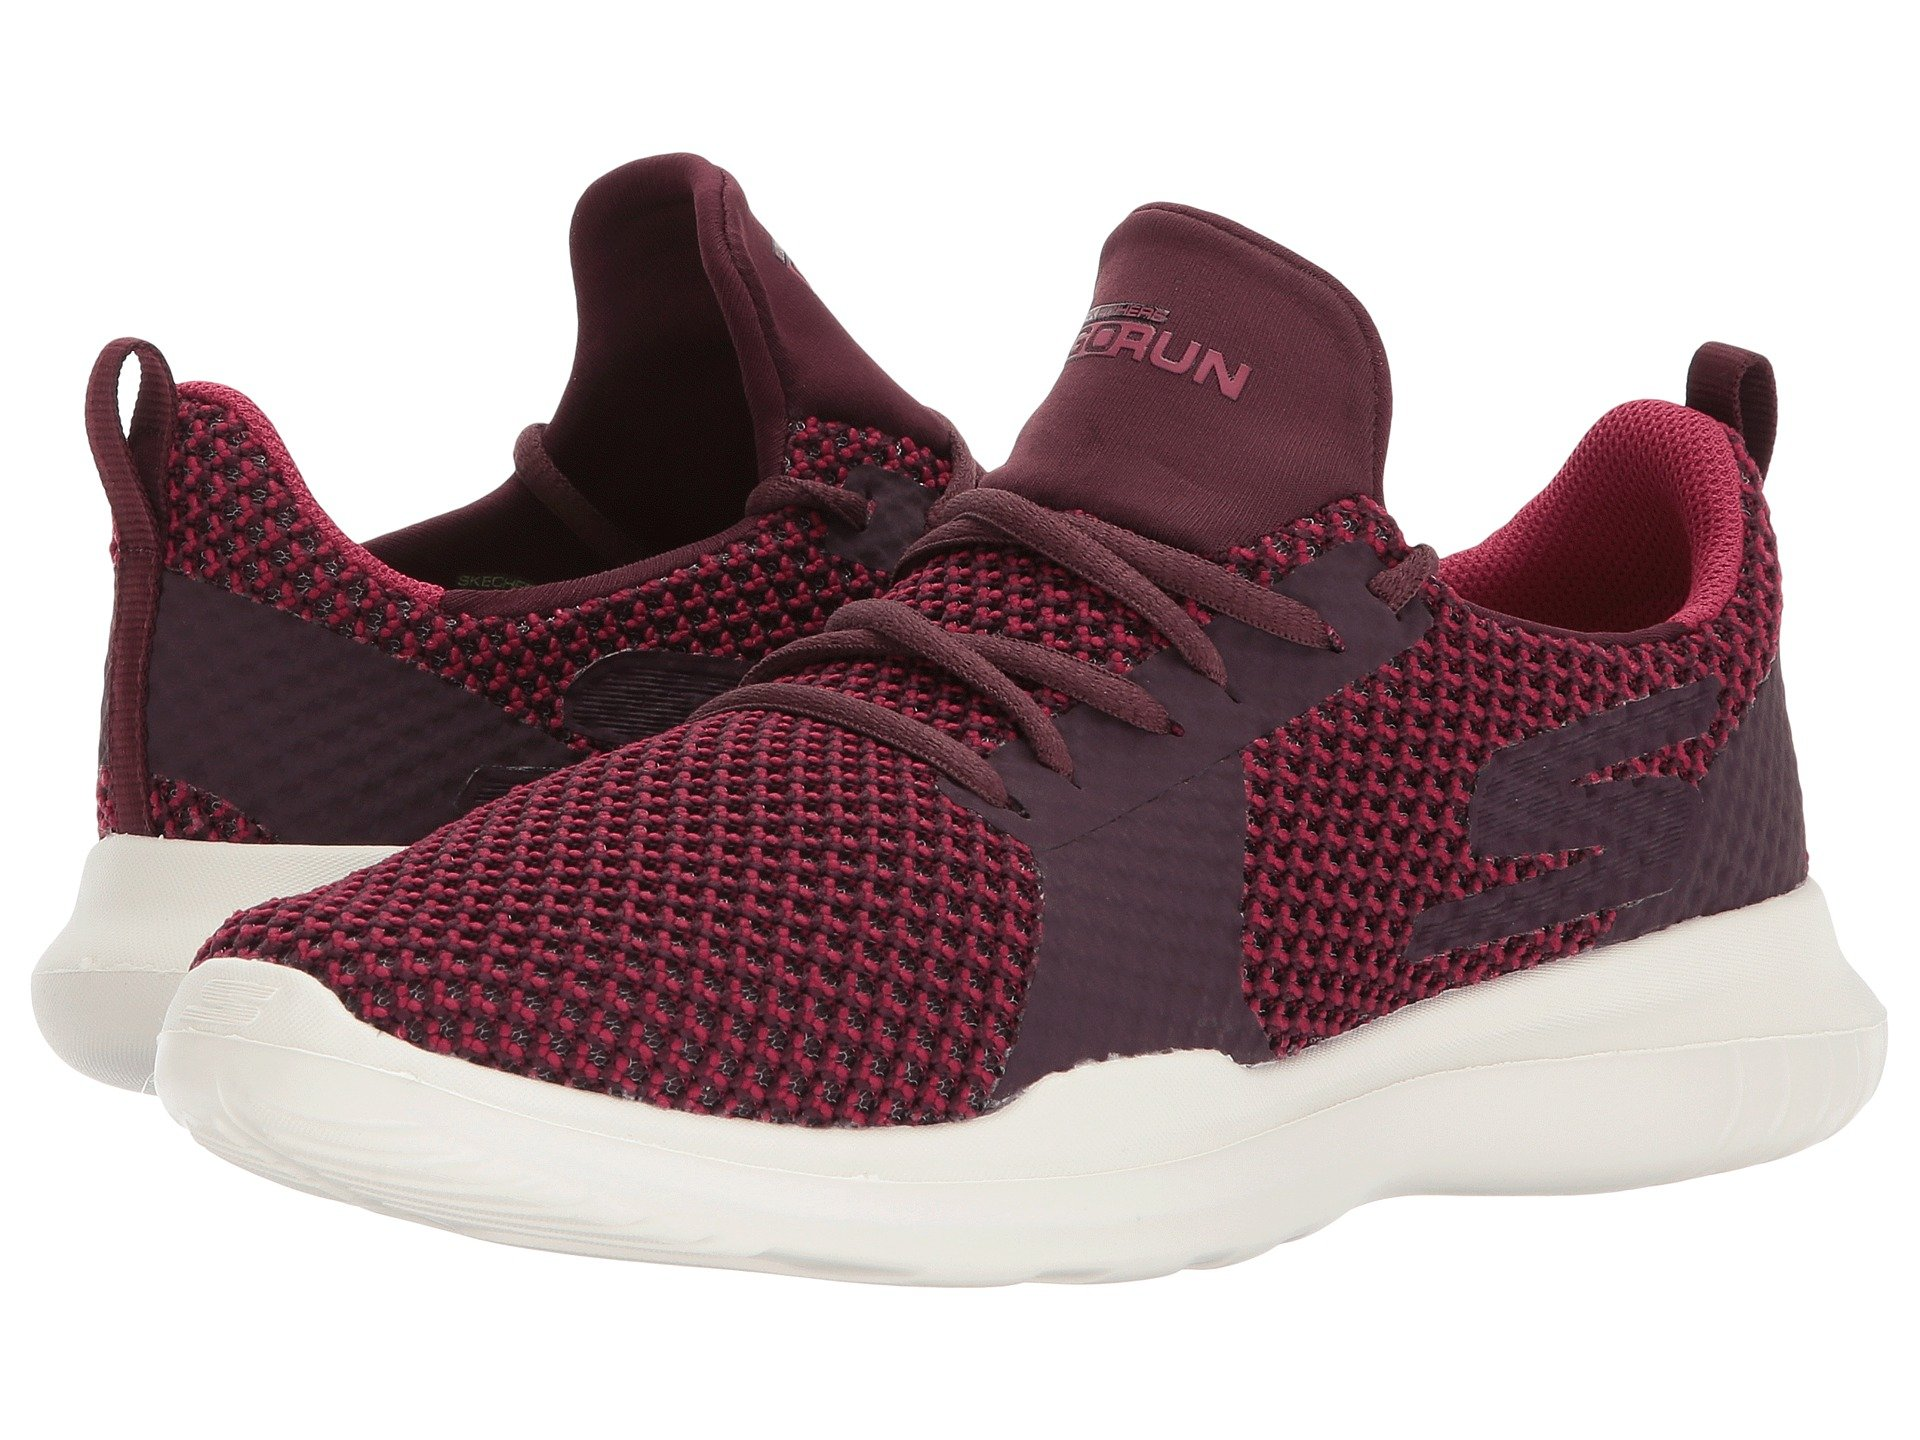 SKECHERS Shoes Burgundy Women